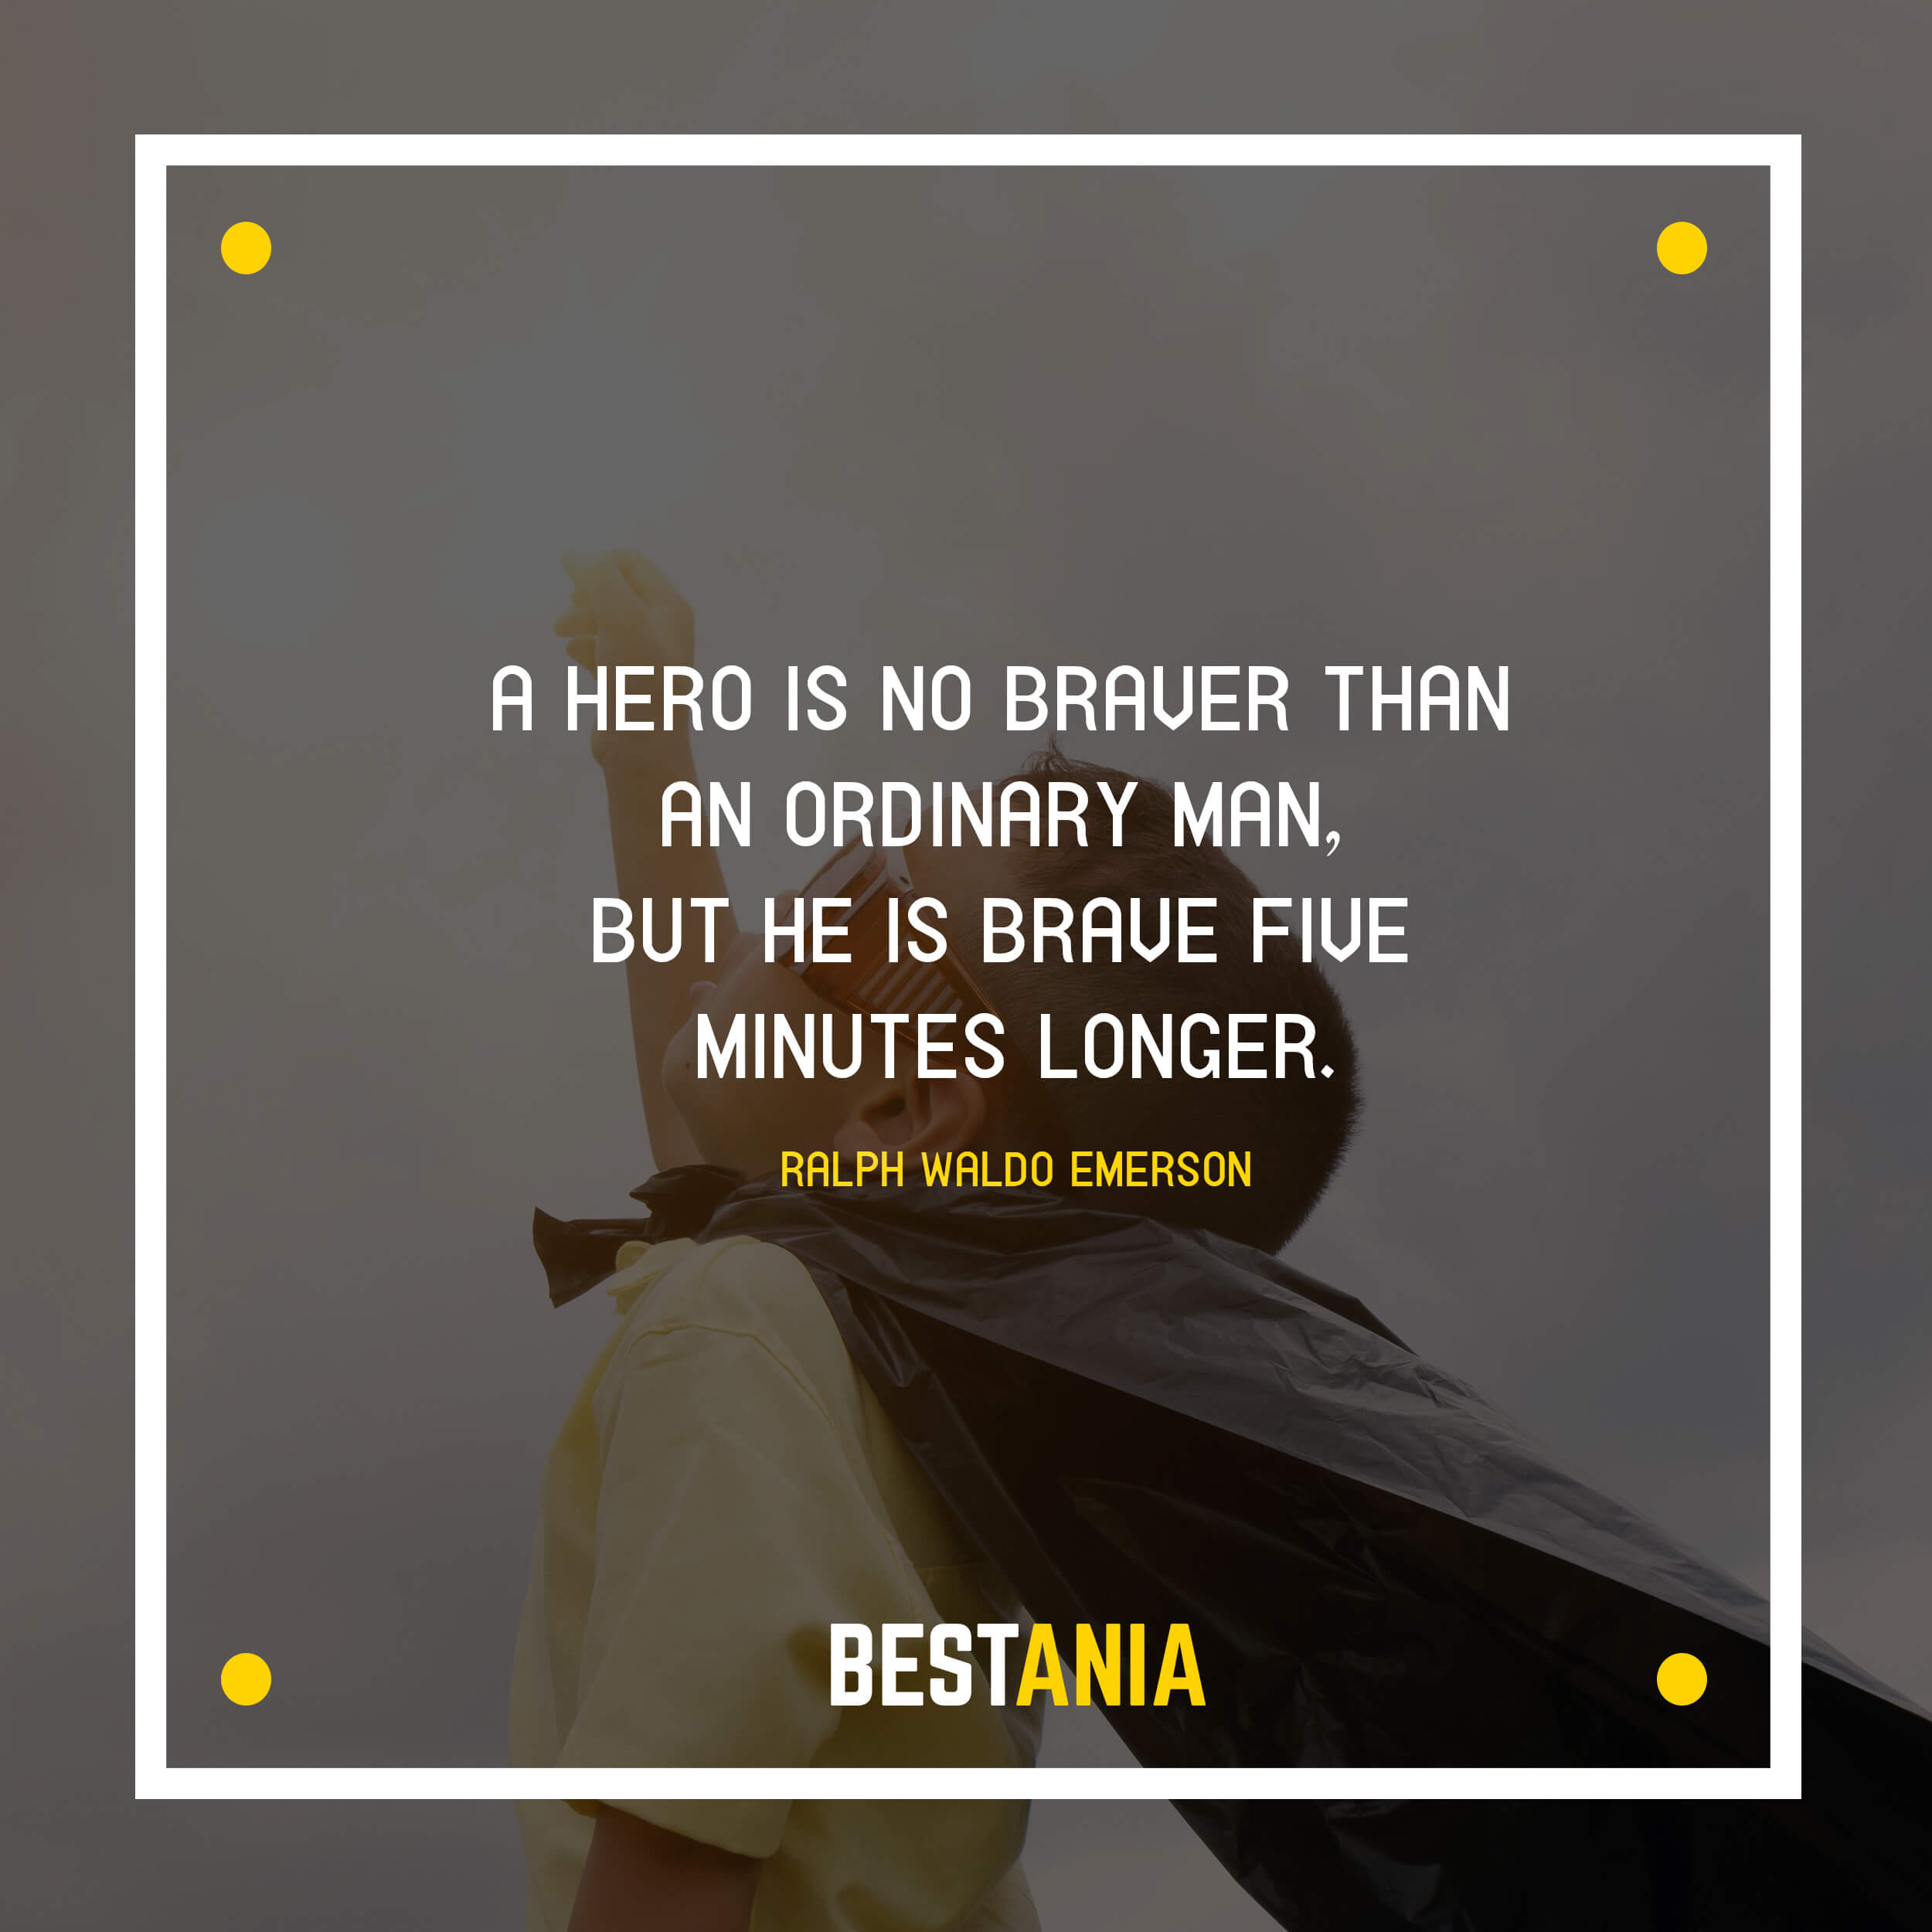 """A HERO IS NO BRAVER THAN AN ORDINARY MAN, BUT HE IS BRAVE FIVE MINUTES LONGER."" RALPH WALDO EMERSON"